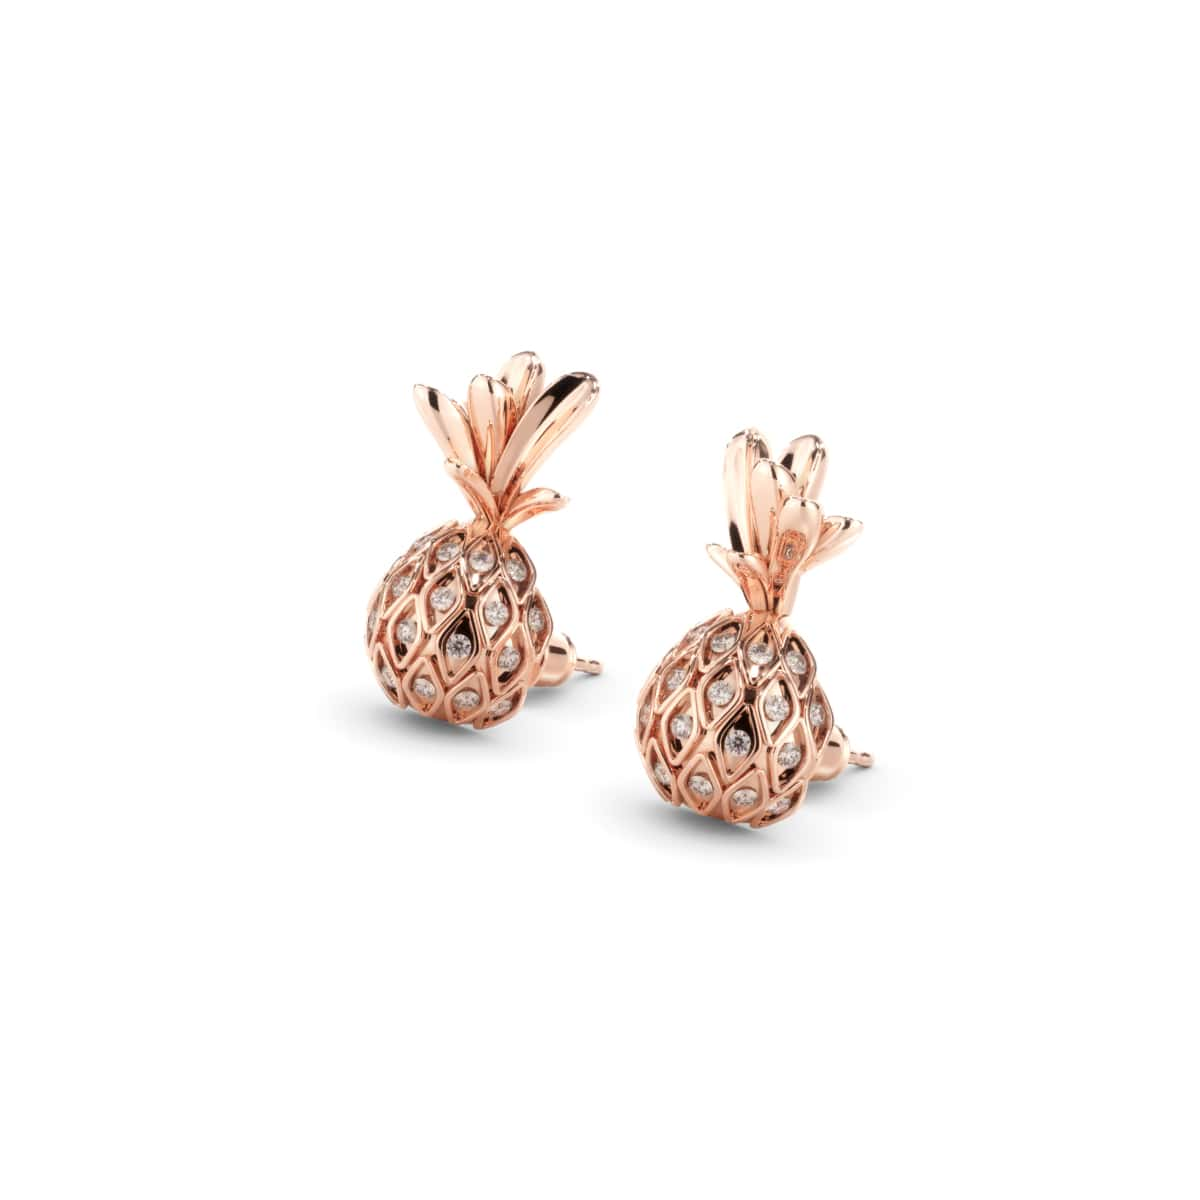 Pina Colada | Rose Gold Vermeil | CZ Diamond Pineapple Earrings